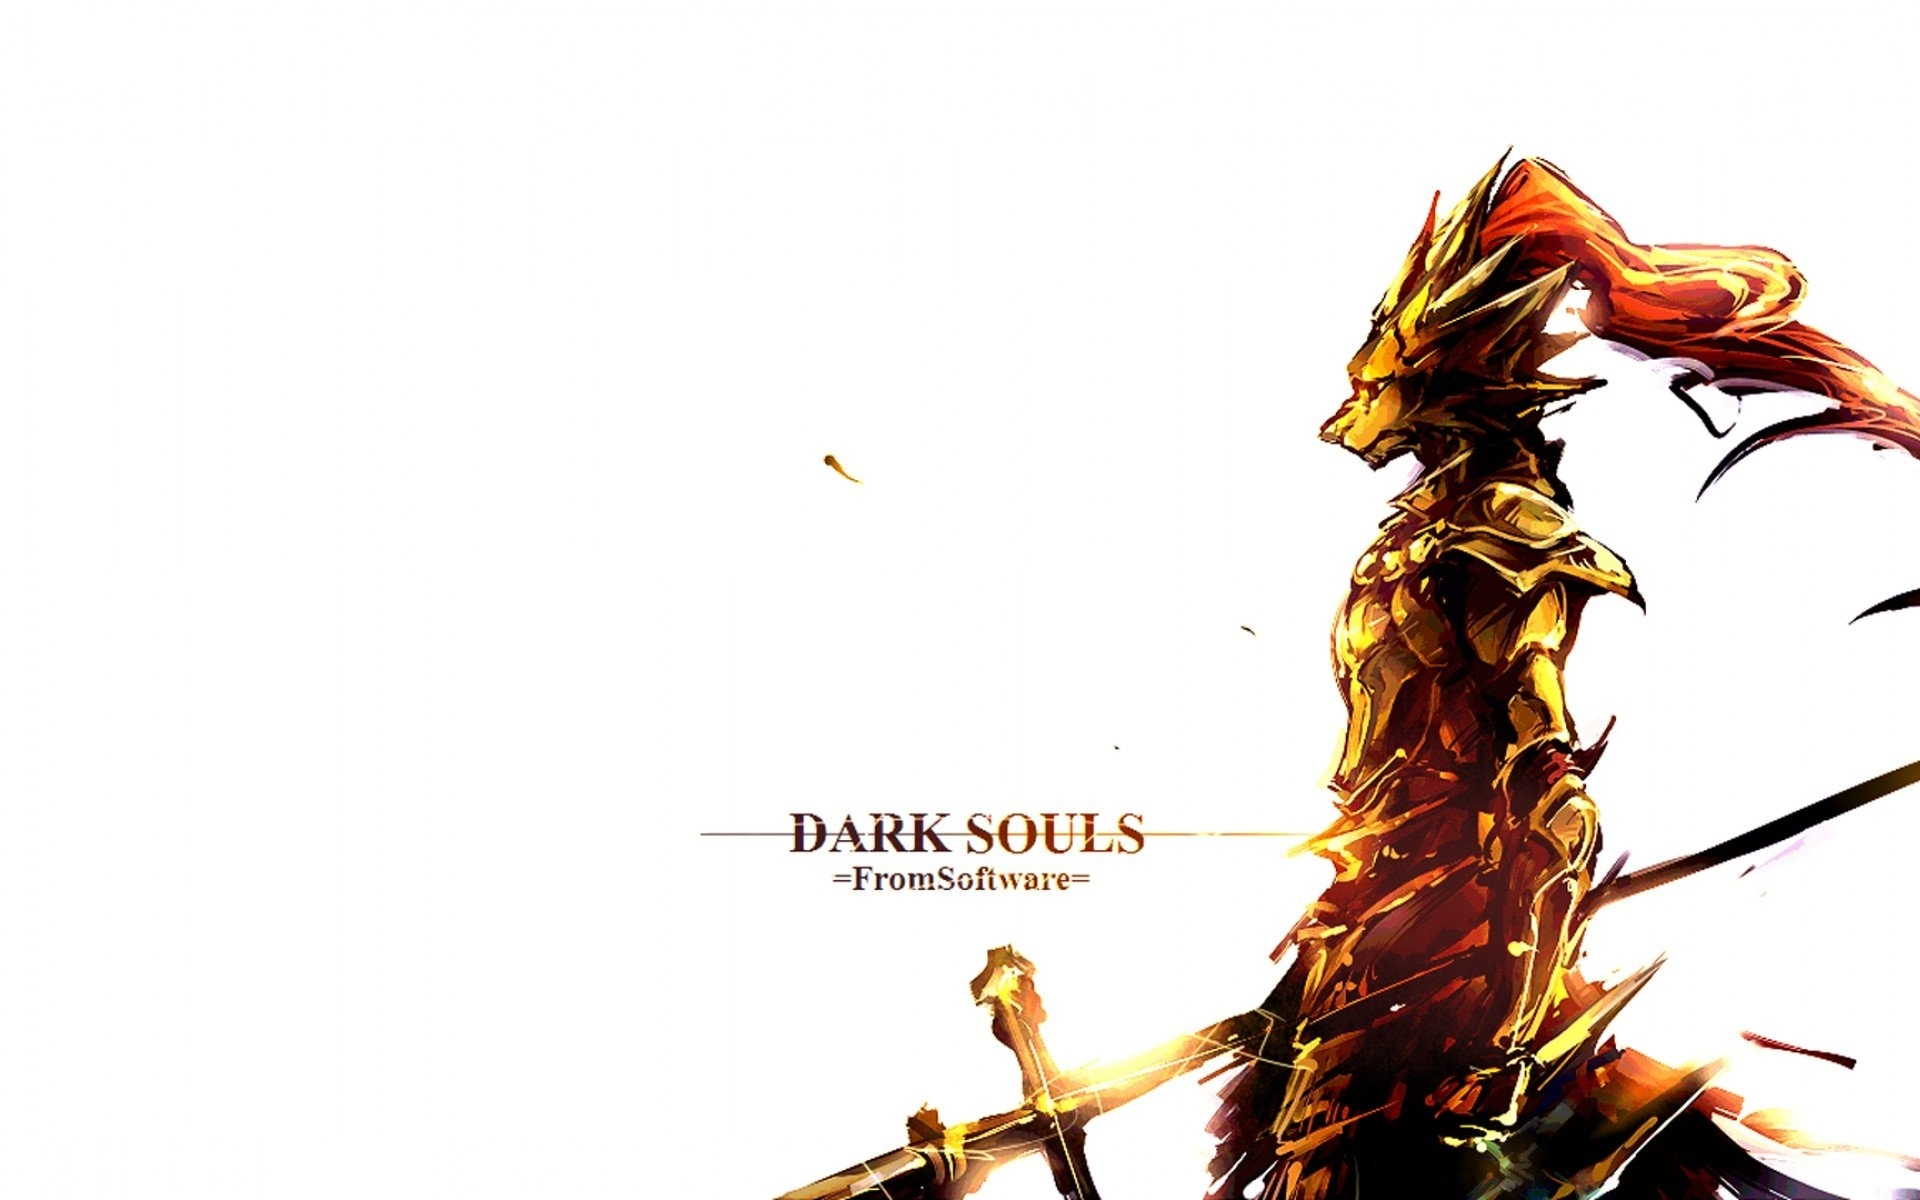 ornstein dark souls - walldevil